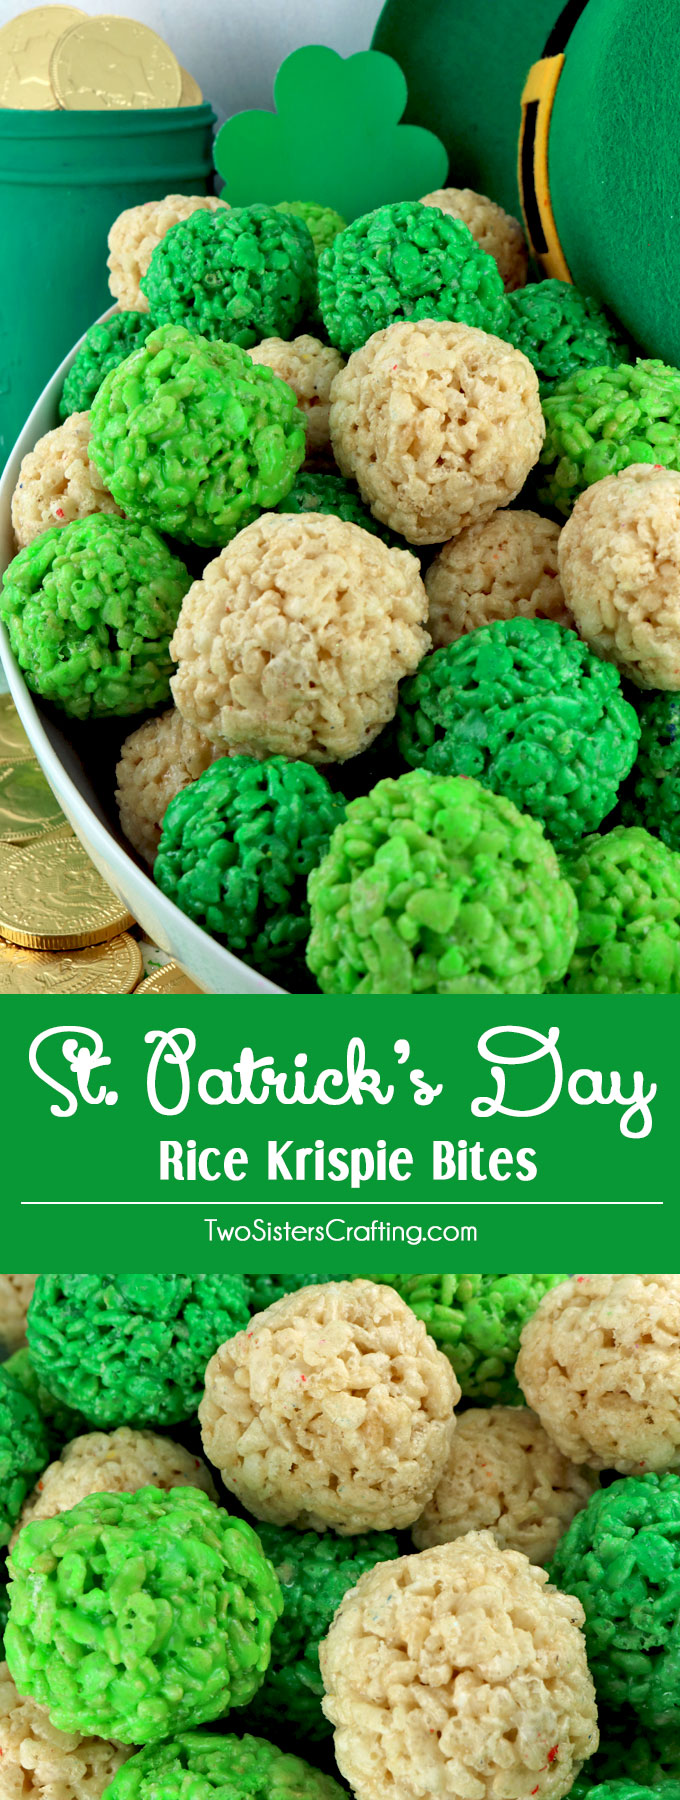 St. Patrick's Day Rice Krispie Bites - Yummy, bite-sized balls of crunchy, marshmallow-y delight. This is a St Patrick's Day dessert that is easy to make and even yummier to eat. These colorful and festive St Patrick's Day Treats are sure to please your loved ones. Pin this fun St. Paddy's Day snack for later and follow us for more fun St. Patrick's Day Food Ideas.